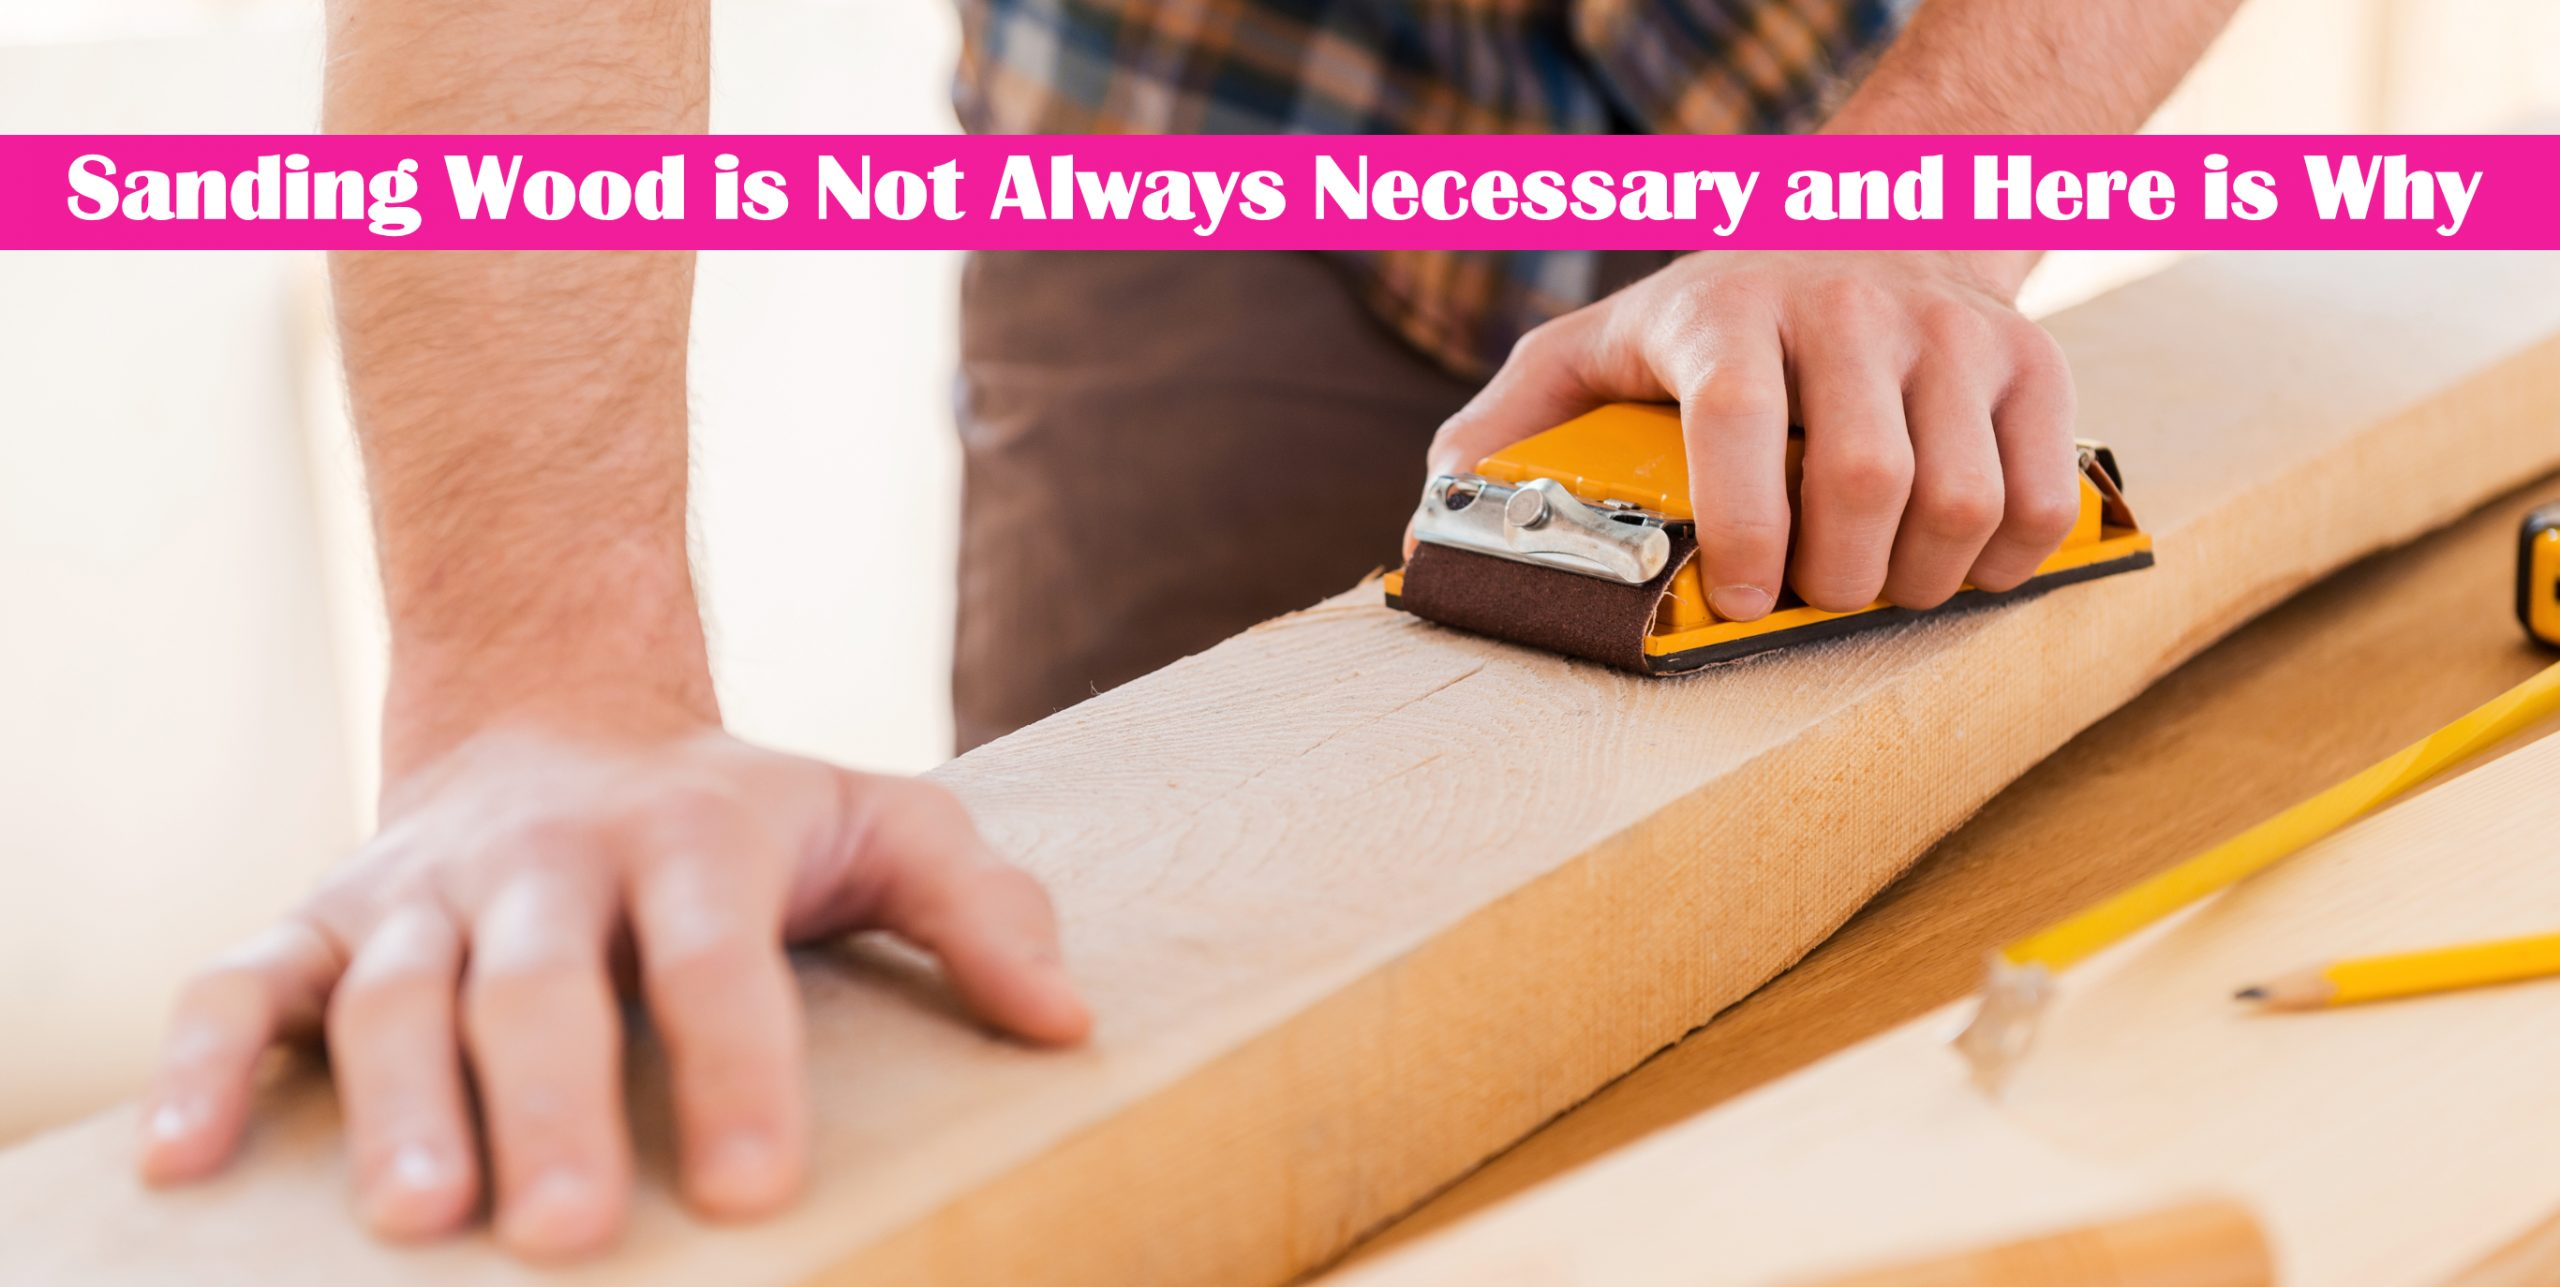 Sanding Wood is Not Always Necessary and Here is Why